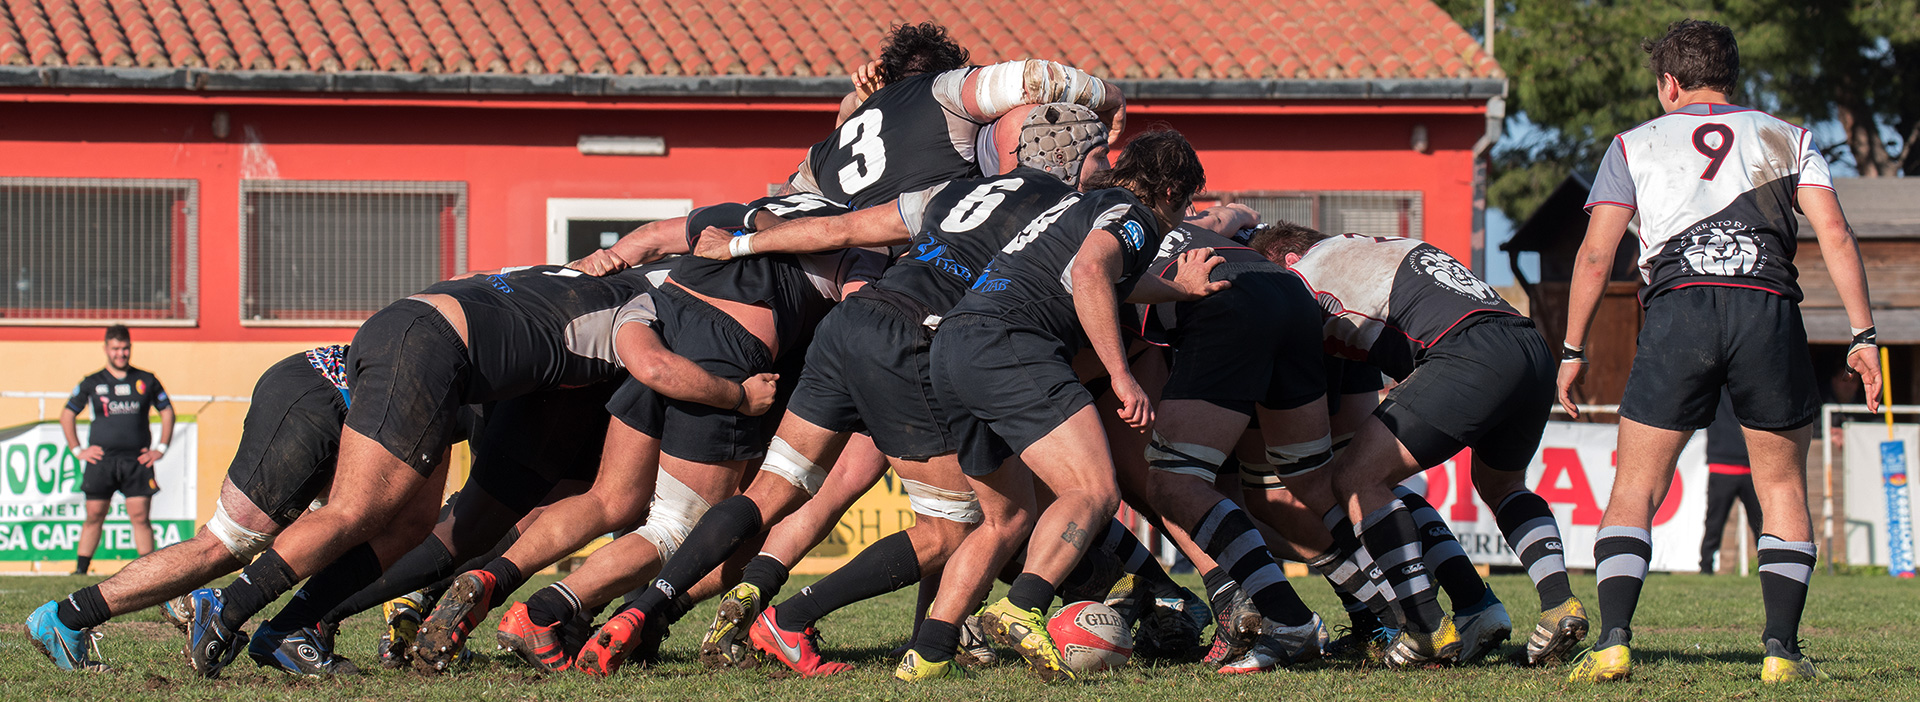 Rugby Capoterra vs Monferrato Rugby